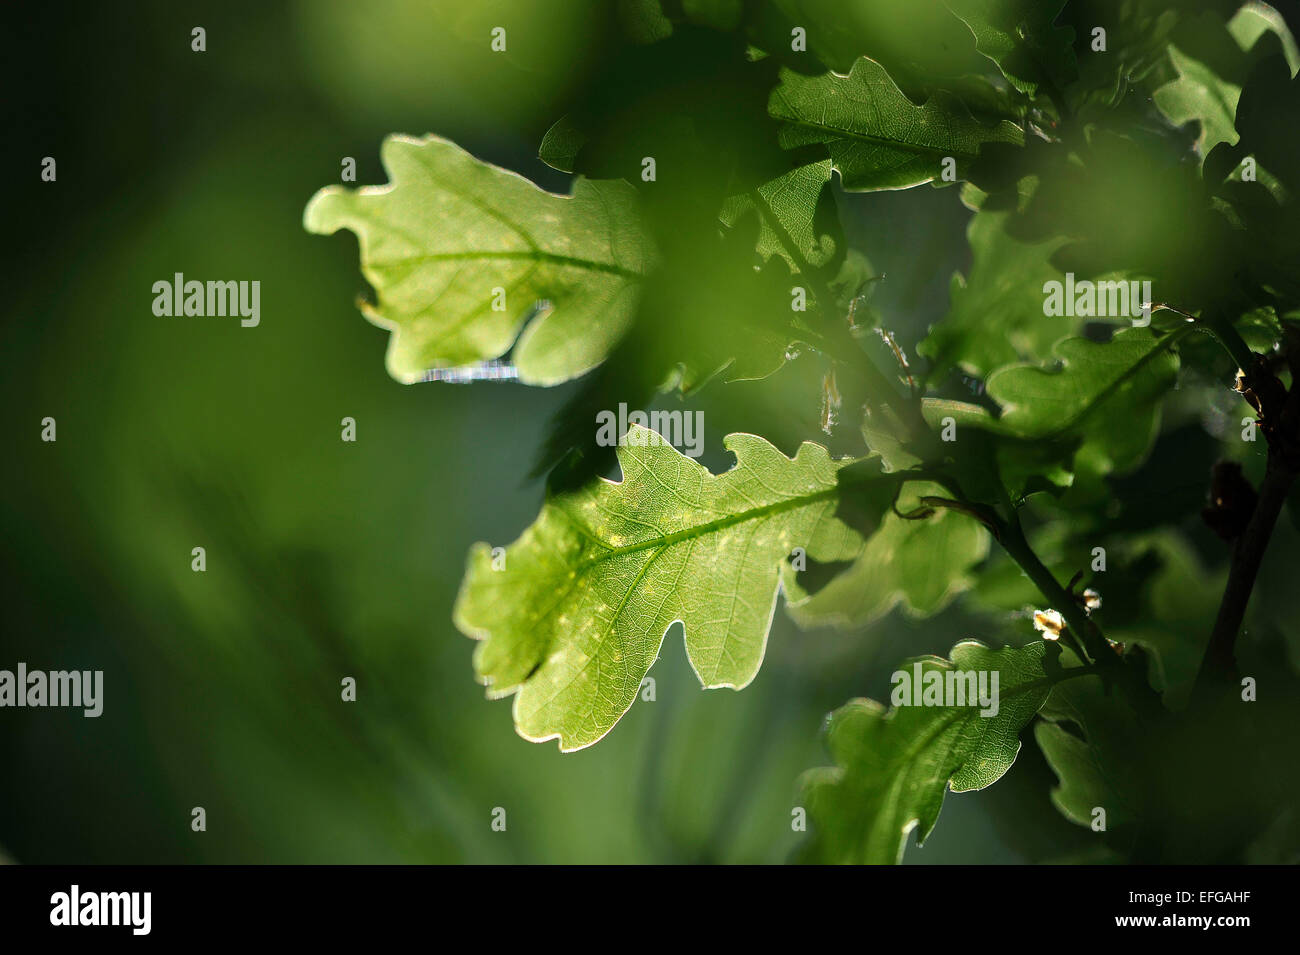 Close-up of green leaves from a tree made translucent from the sun - Stock Image